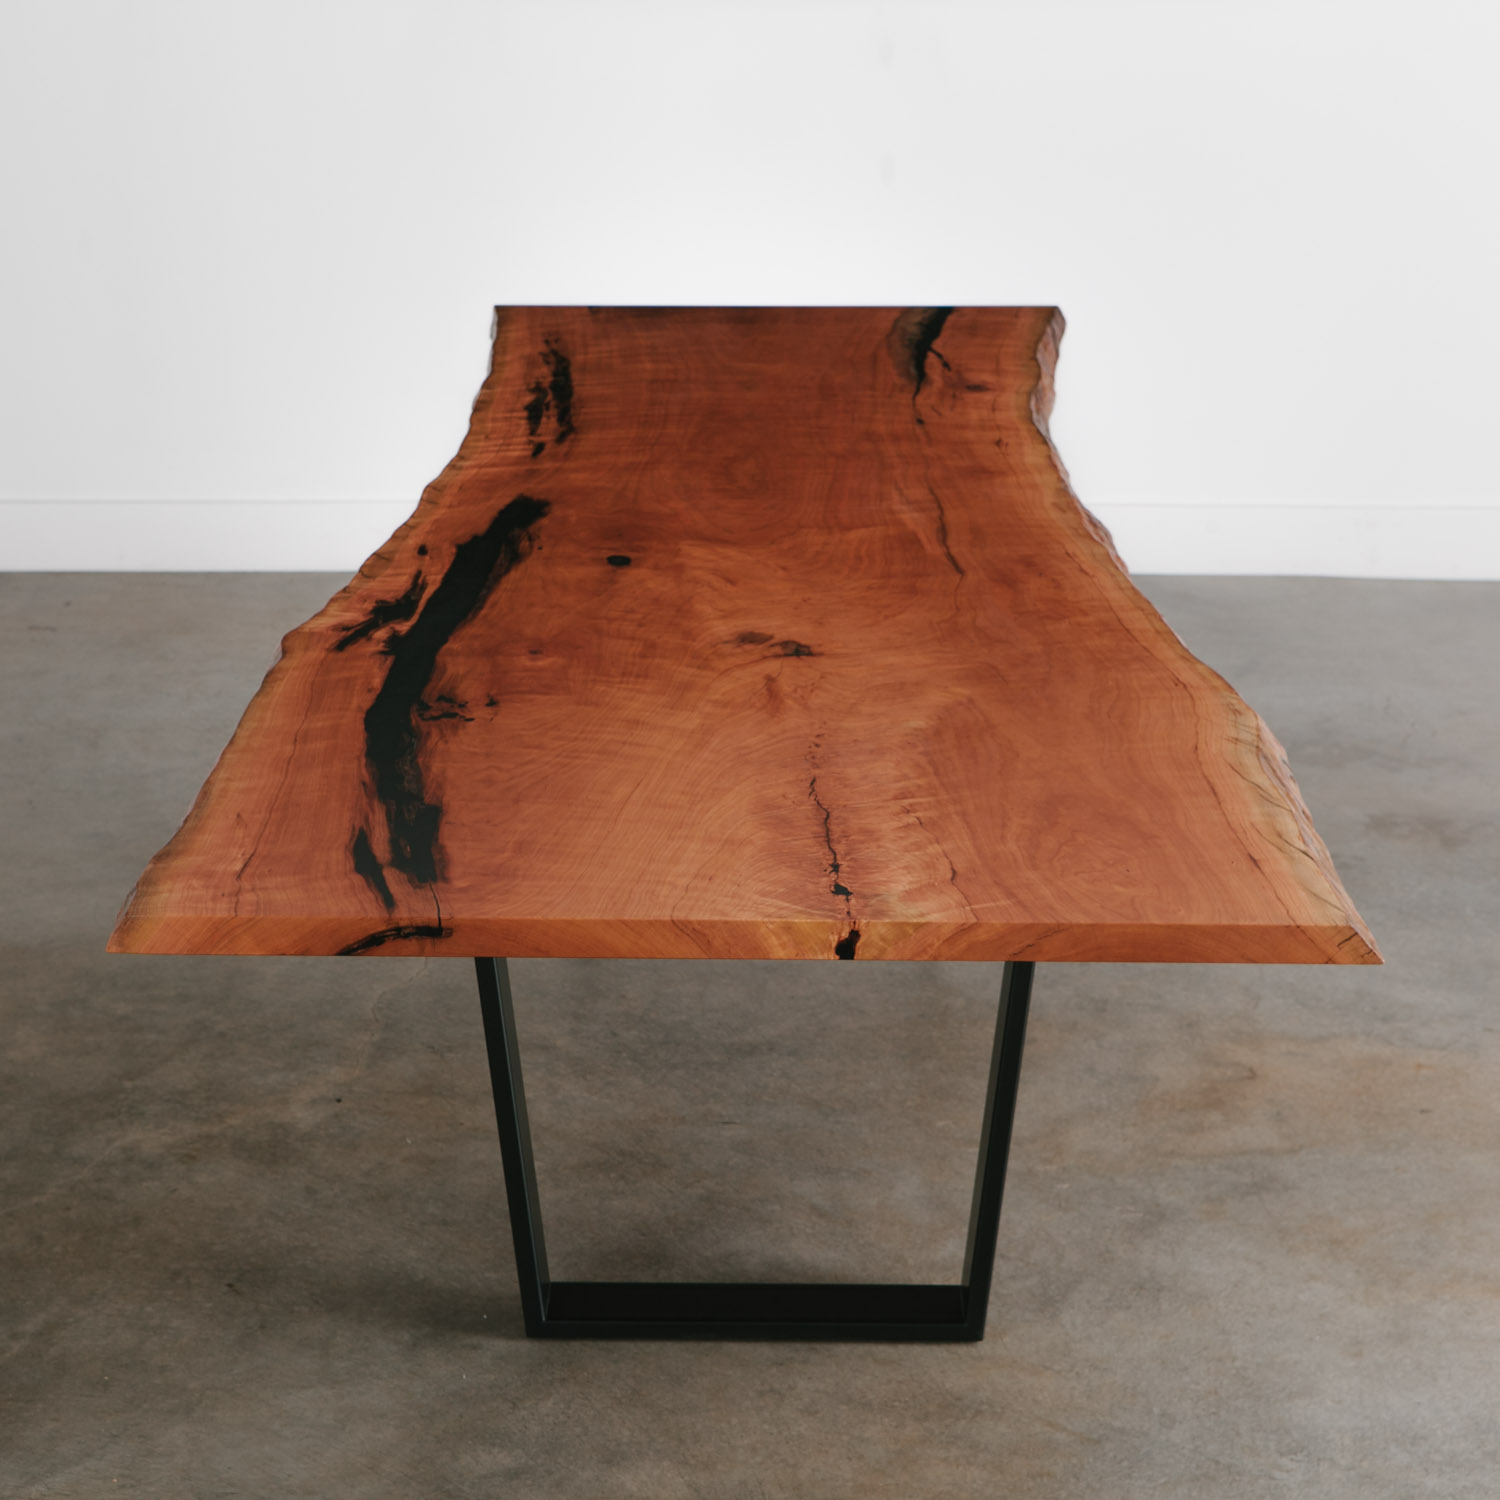 Modern live edge cherry table with steel legs